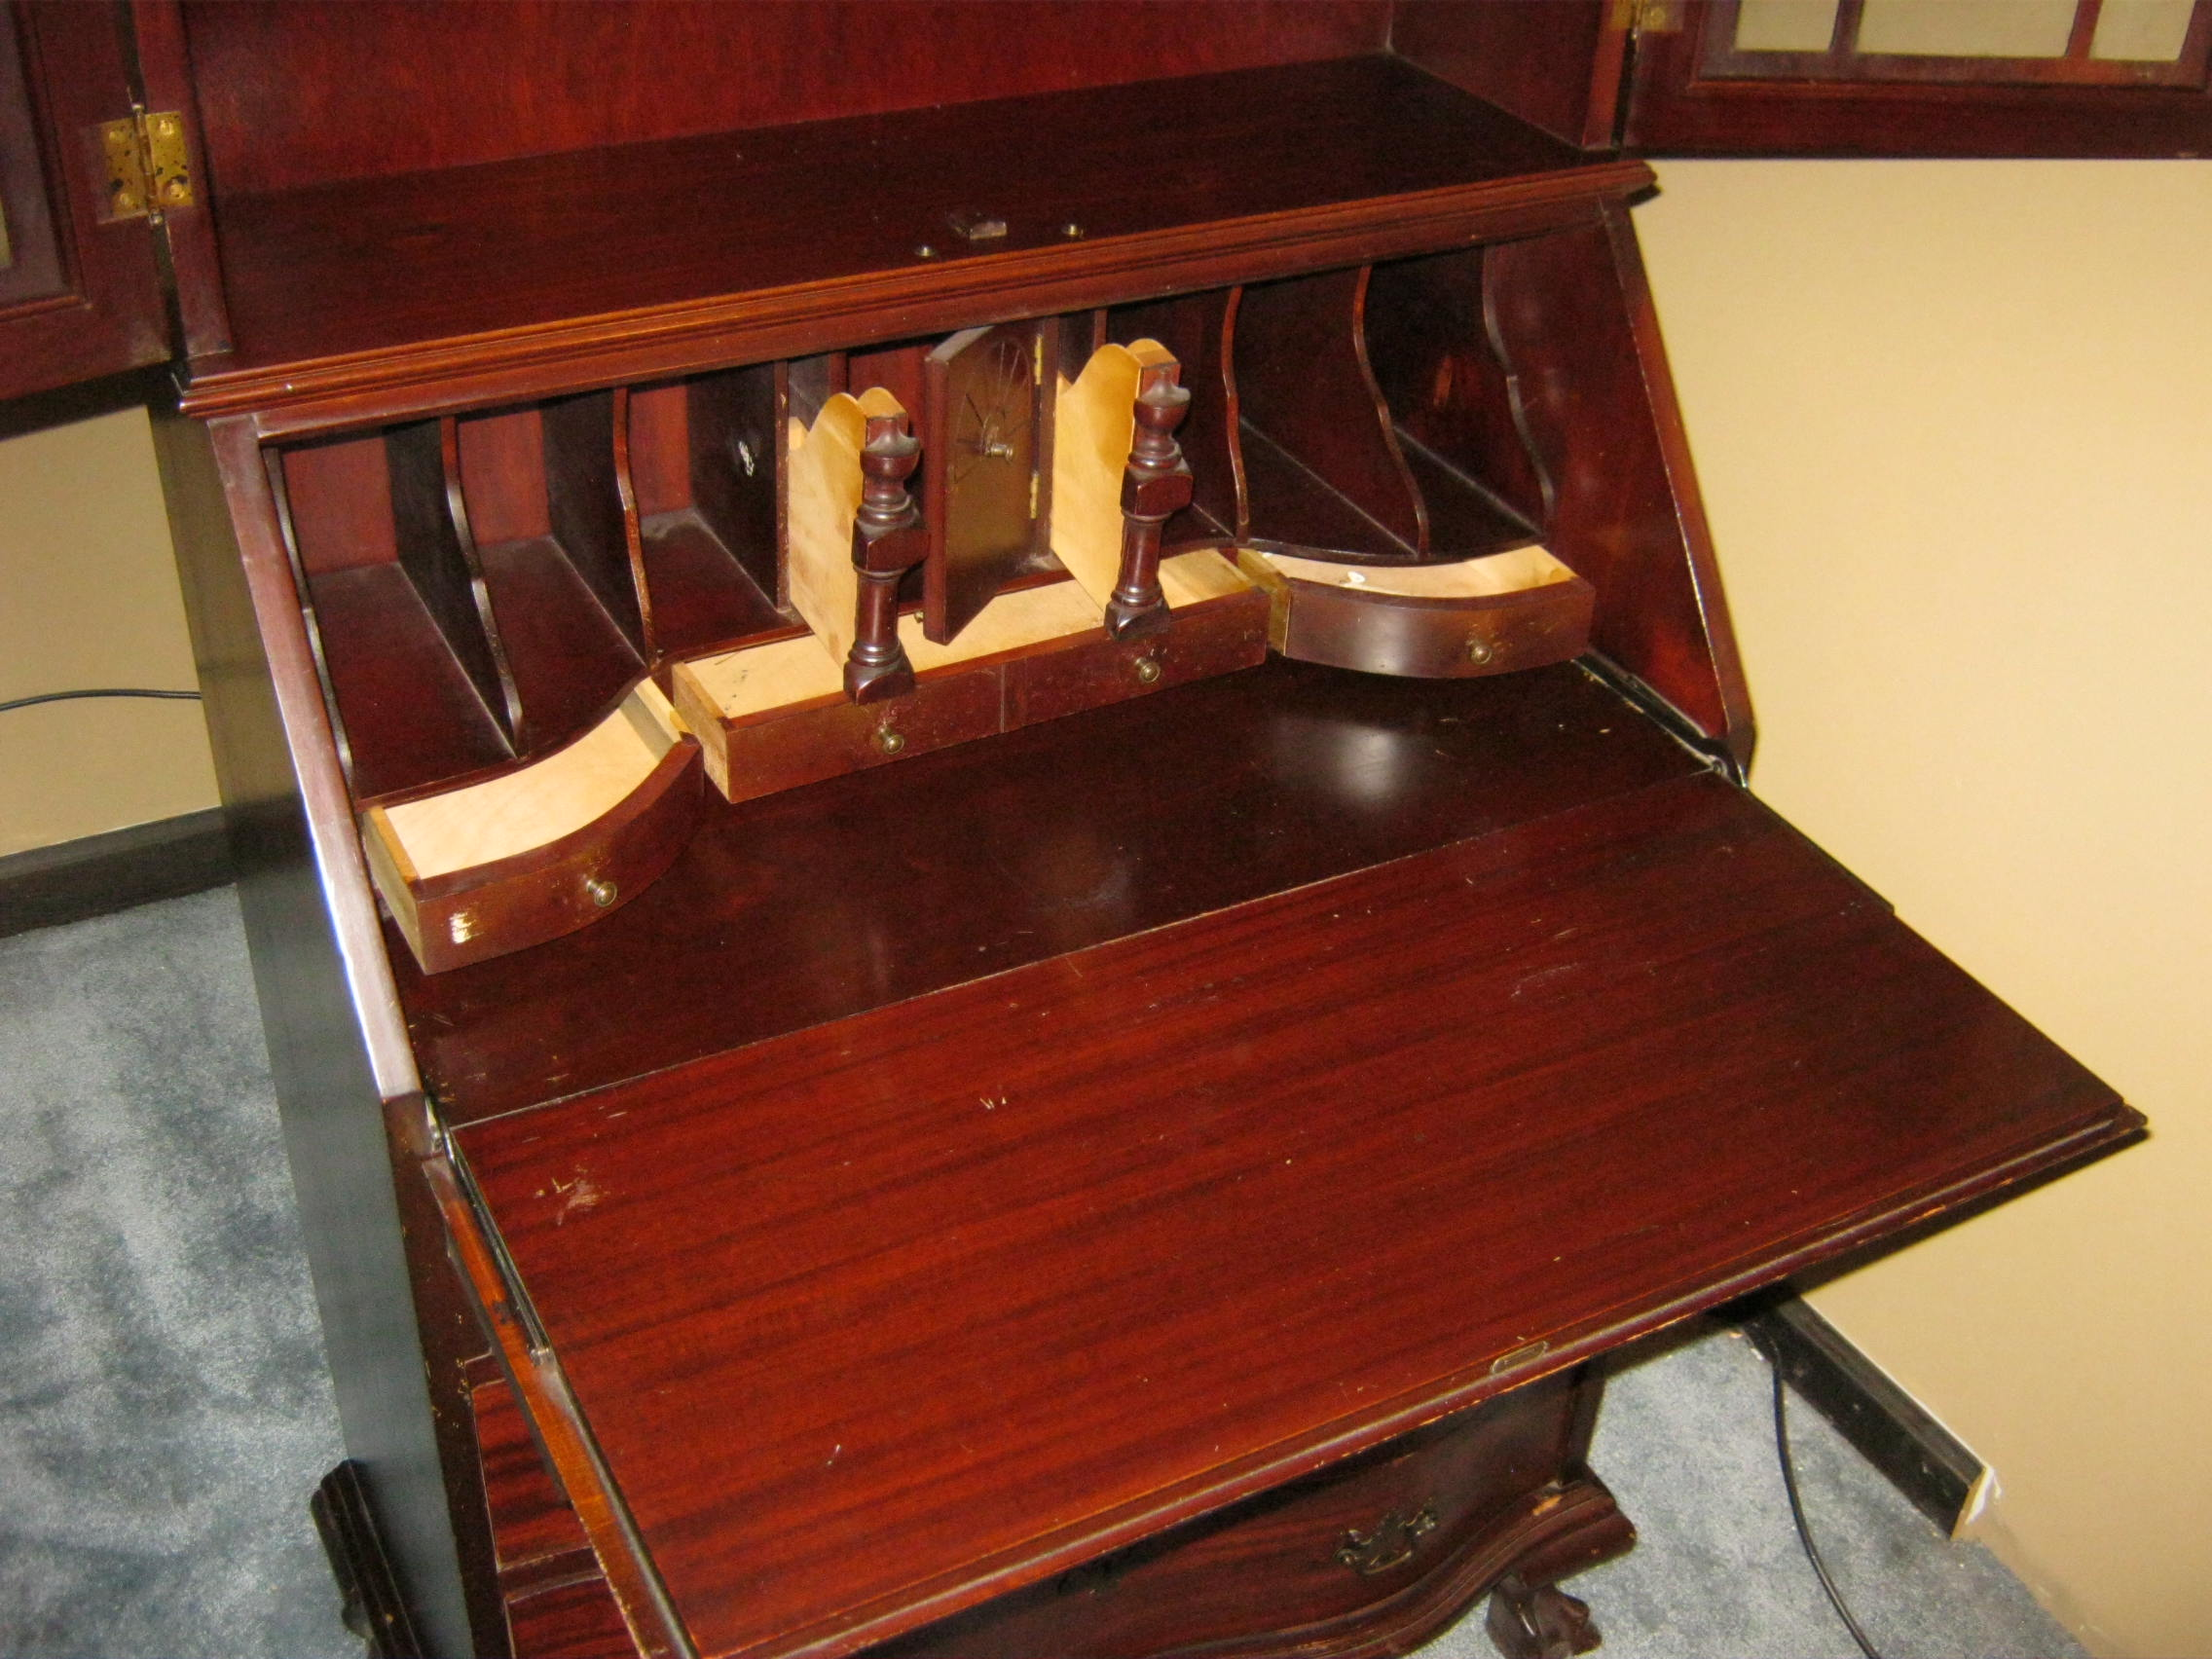 compartments the compartment confederacy museum house war blog hidden rear img wednesday opened with white desk american secret civil of